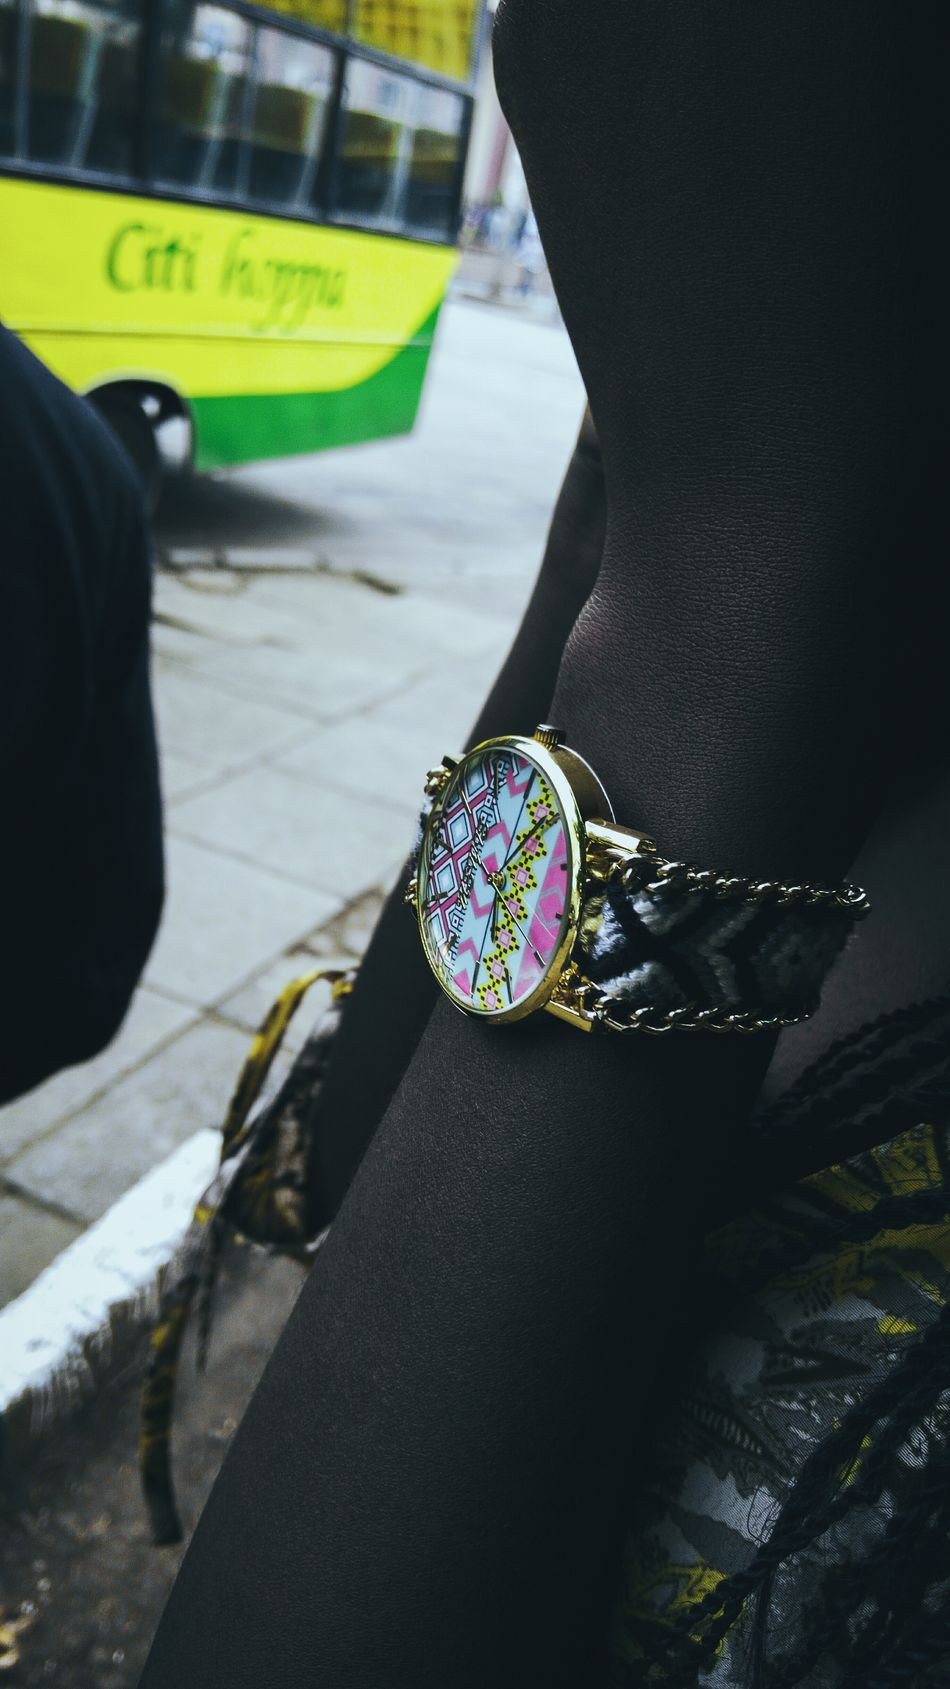 Outdoors Human Hand Day Canon EyeEm Land Vehicle City Real People EyeEm Gallery Africa Close-up Vintage Detail Textured  Fashion Canon_camera Streetphotography Colors Human Body Part Wrist Watch